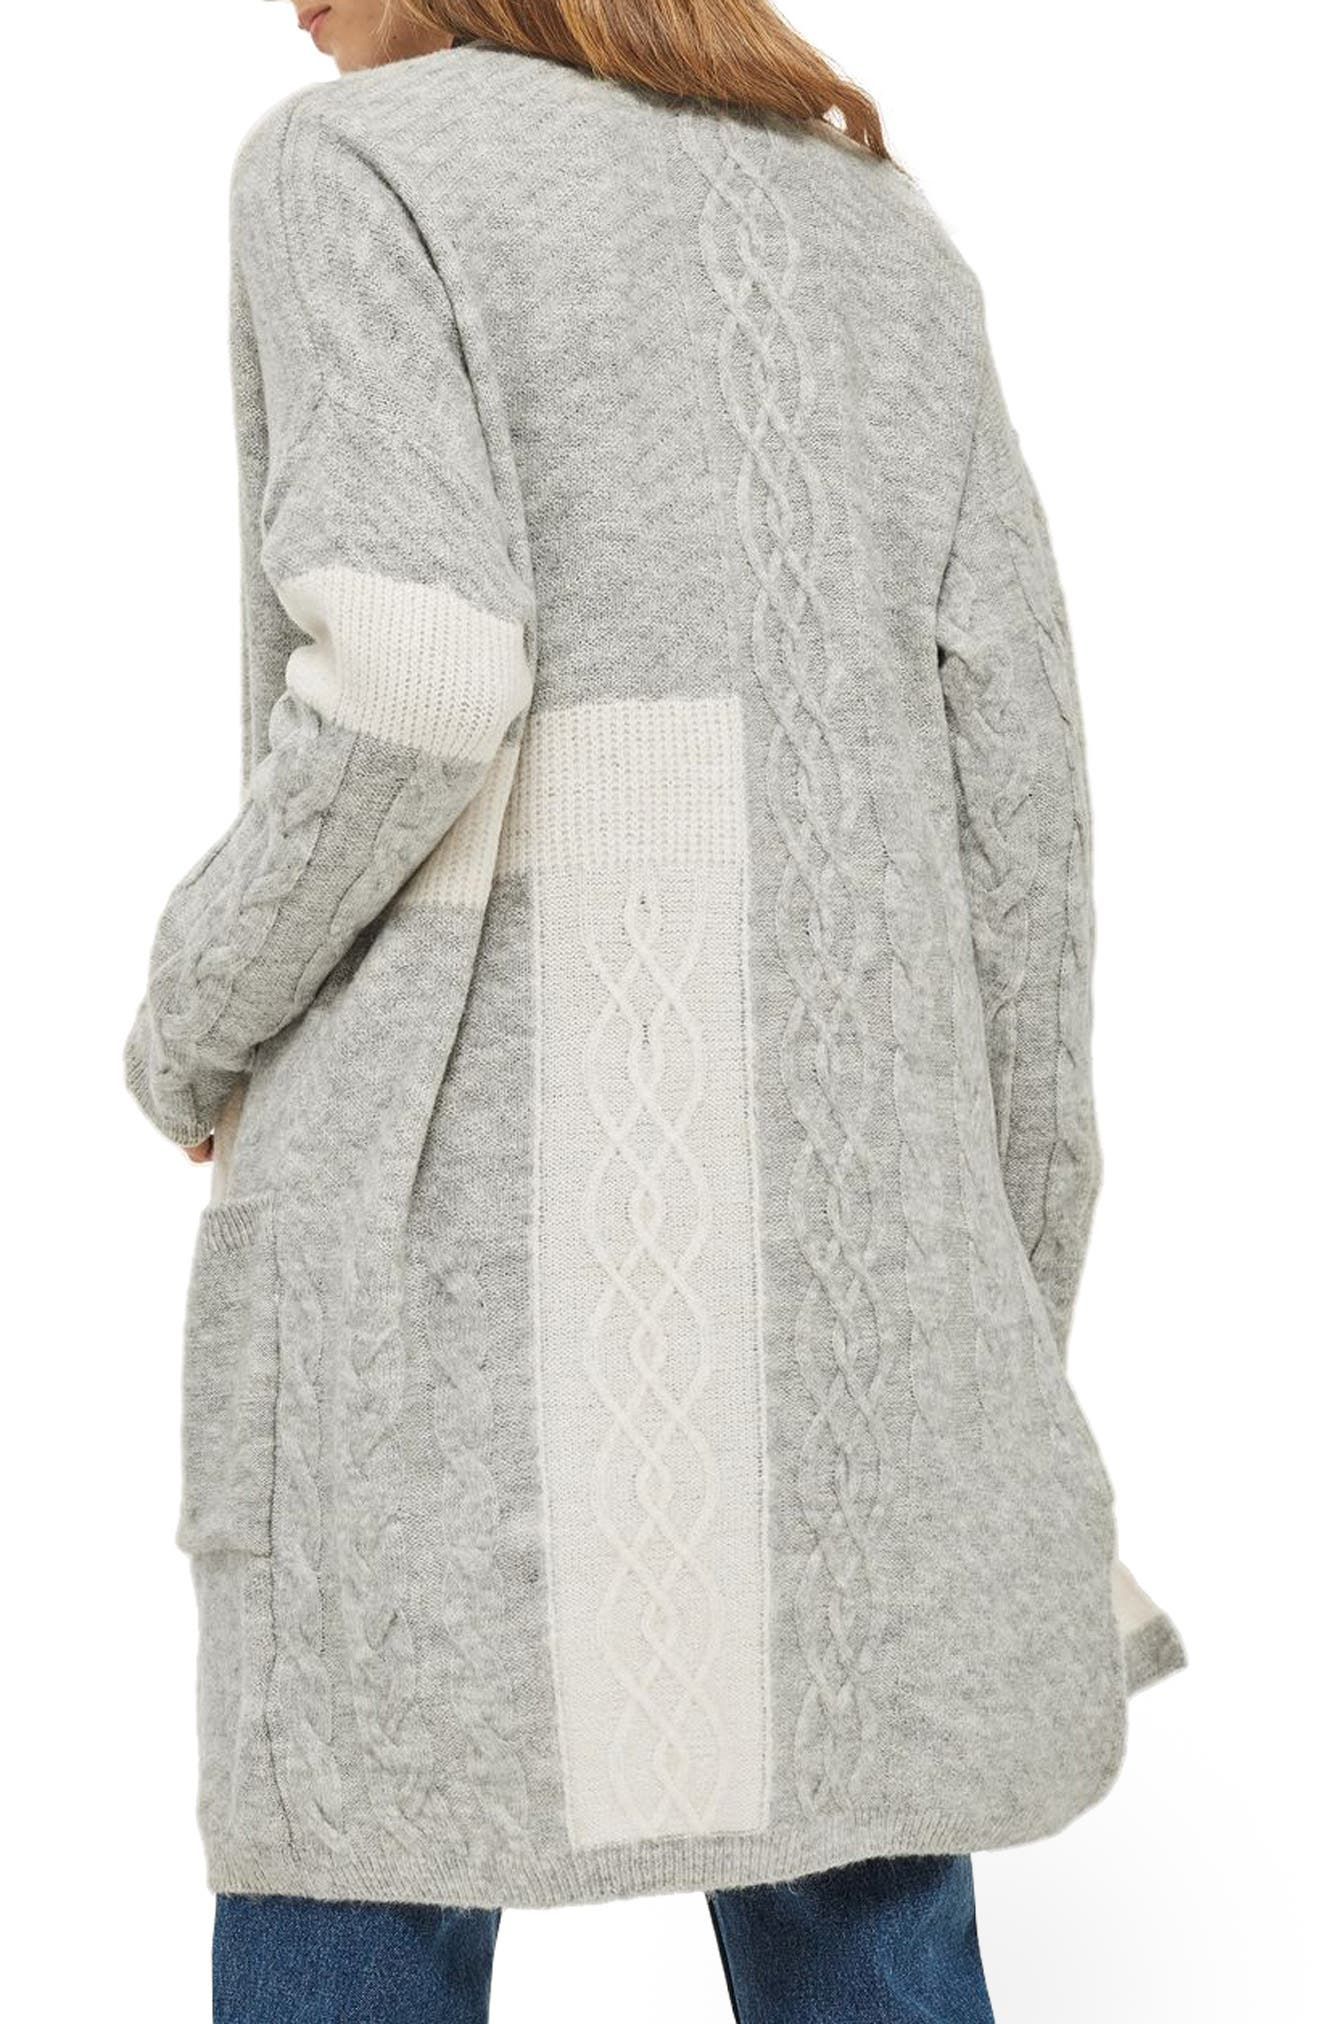 Patchwork Cardigan,                             Alternate thumbnail 3, color,                             Grey Multi